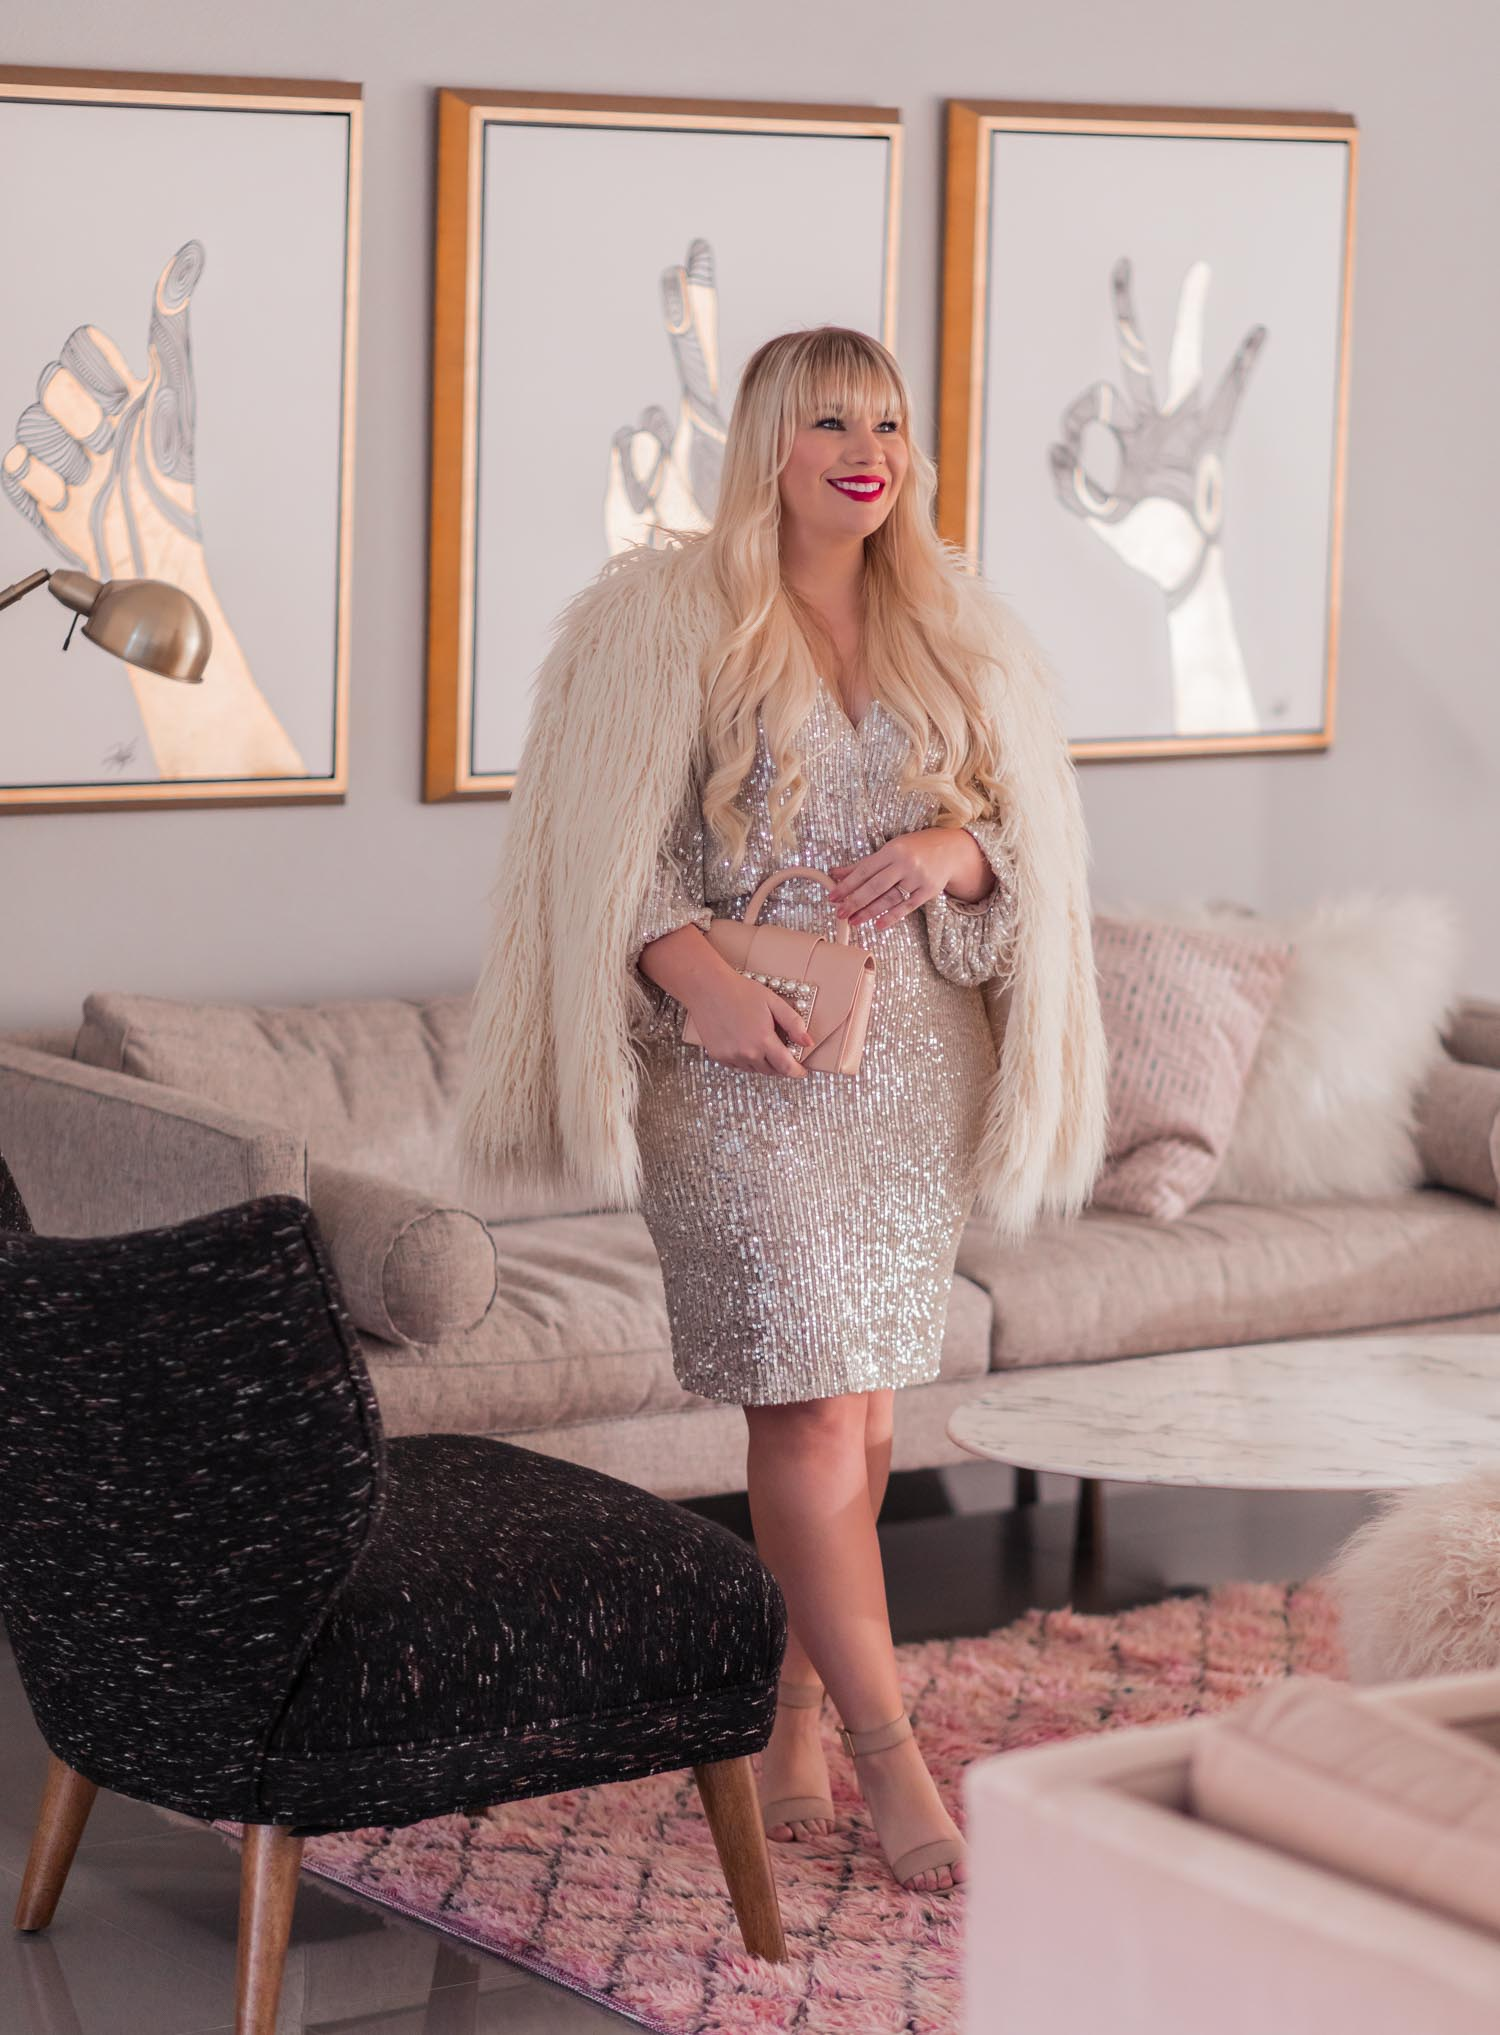 Elizabeth Hugen of Lizzie in Lace shares a feminine holiday outfit idea featuring a sequin New Years eve dress.